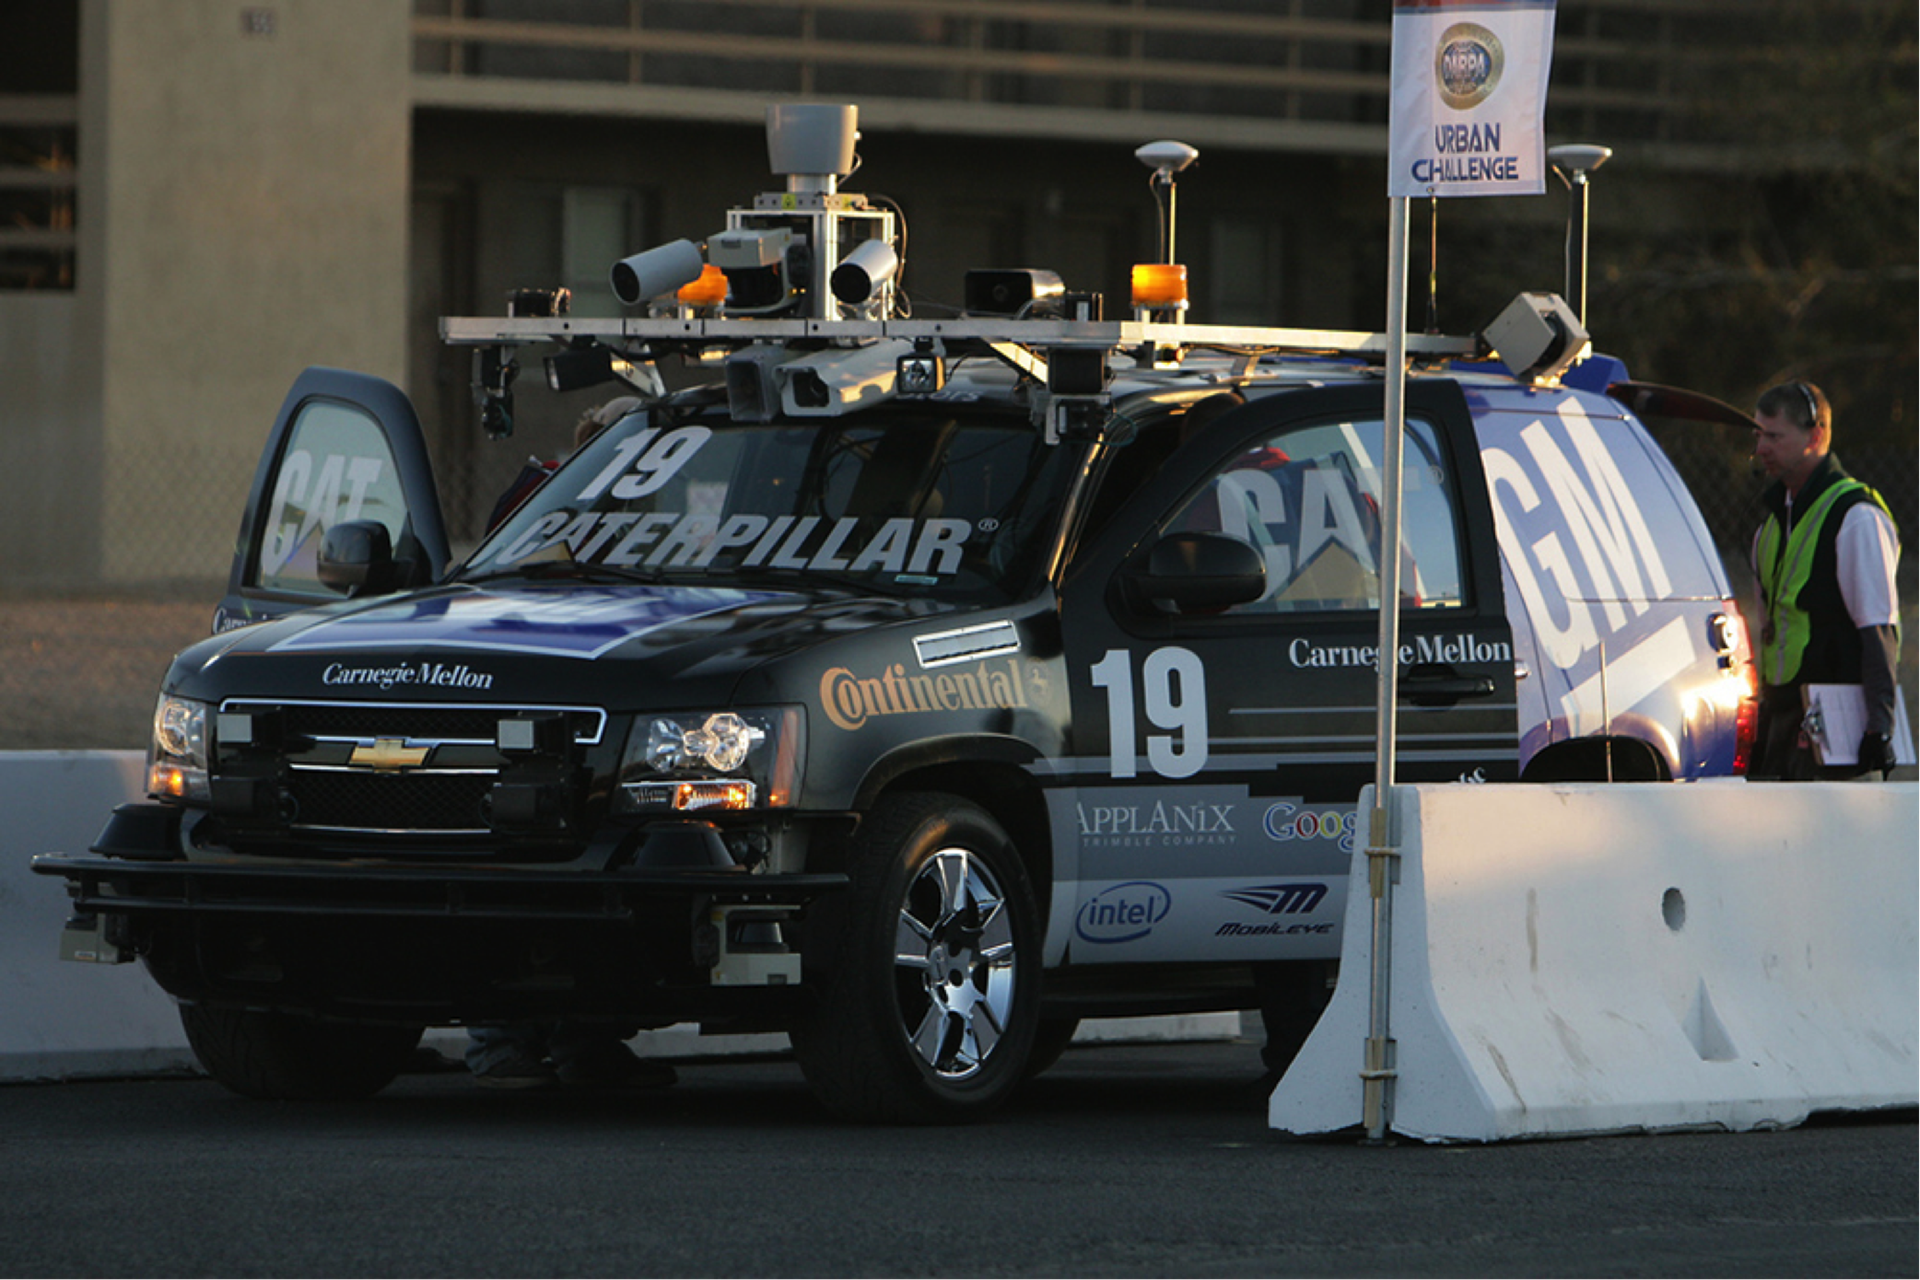 Photo by Ken Conley, flickr. A Chevy Tahoe, with autonomous capabilities added by Carnegie Mellon University researchers, navigated a 55-mile urban course in a 2007 competition in California. The vehicle has more than a dozen sensors and averaged a speed of 14 mph during the challenge.